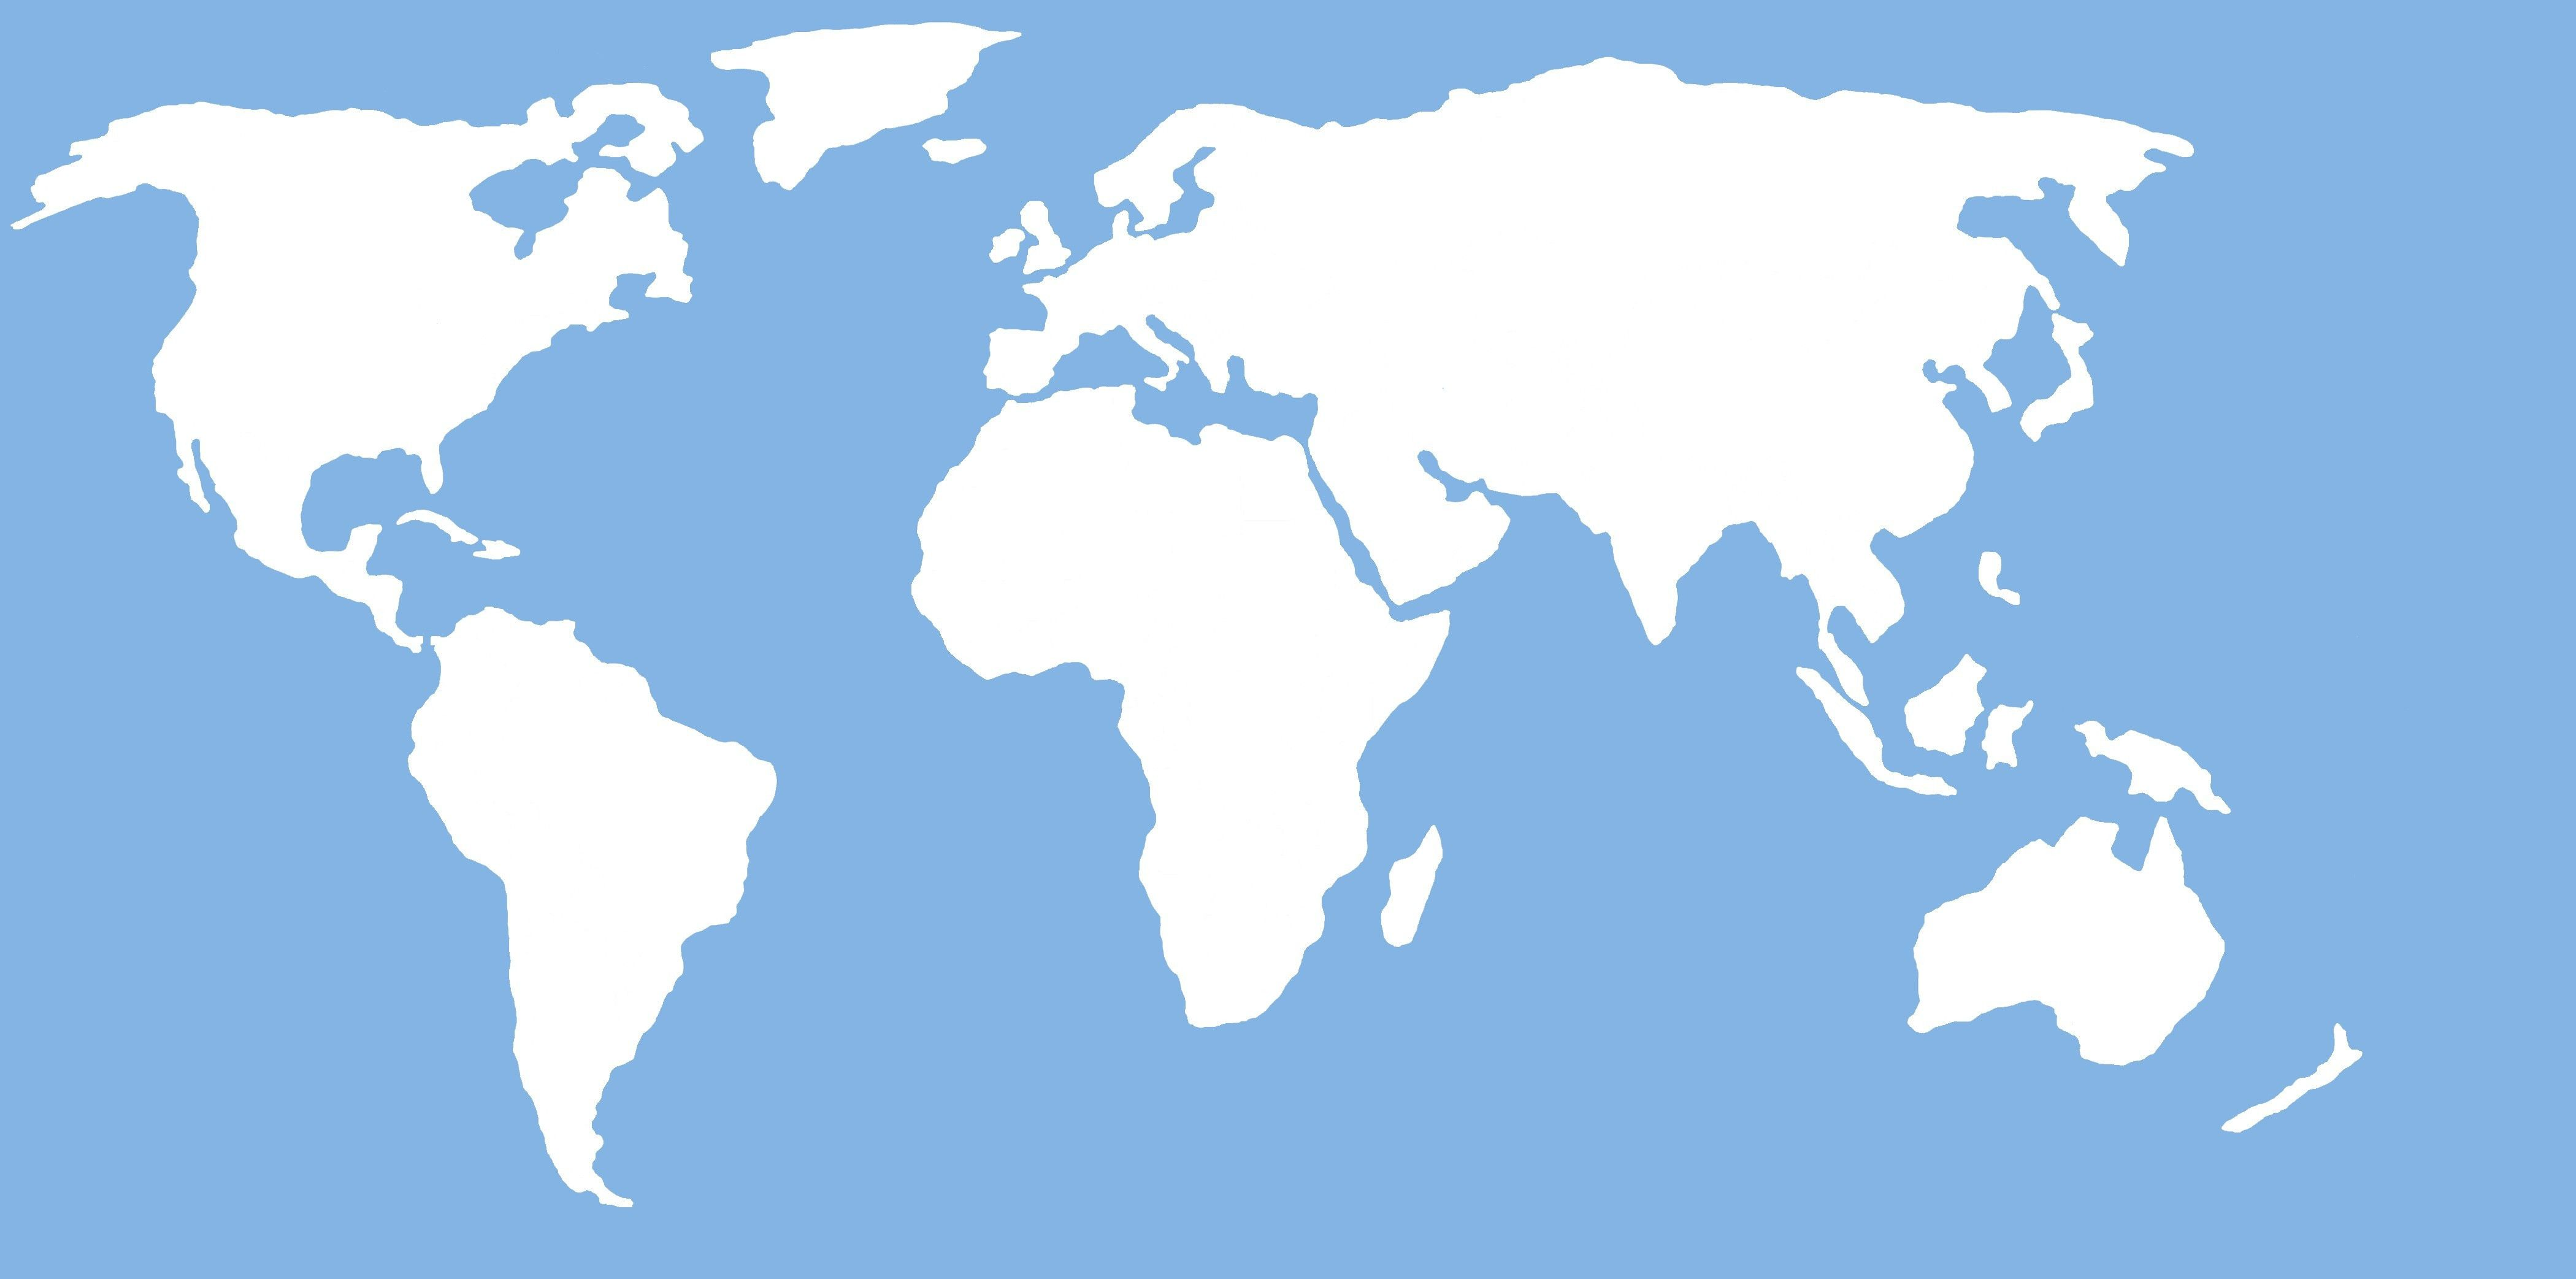 simplified vector world map World Map Vector Simple New Simplified World Map Divided To